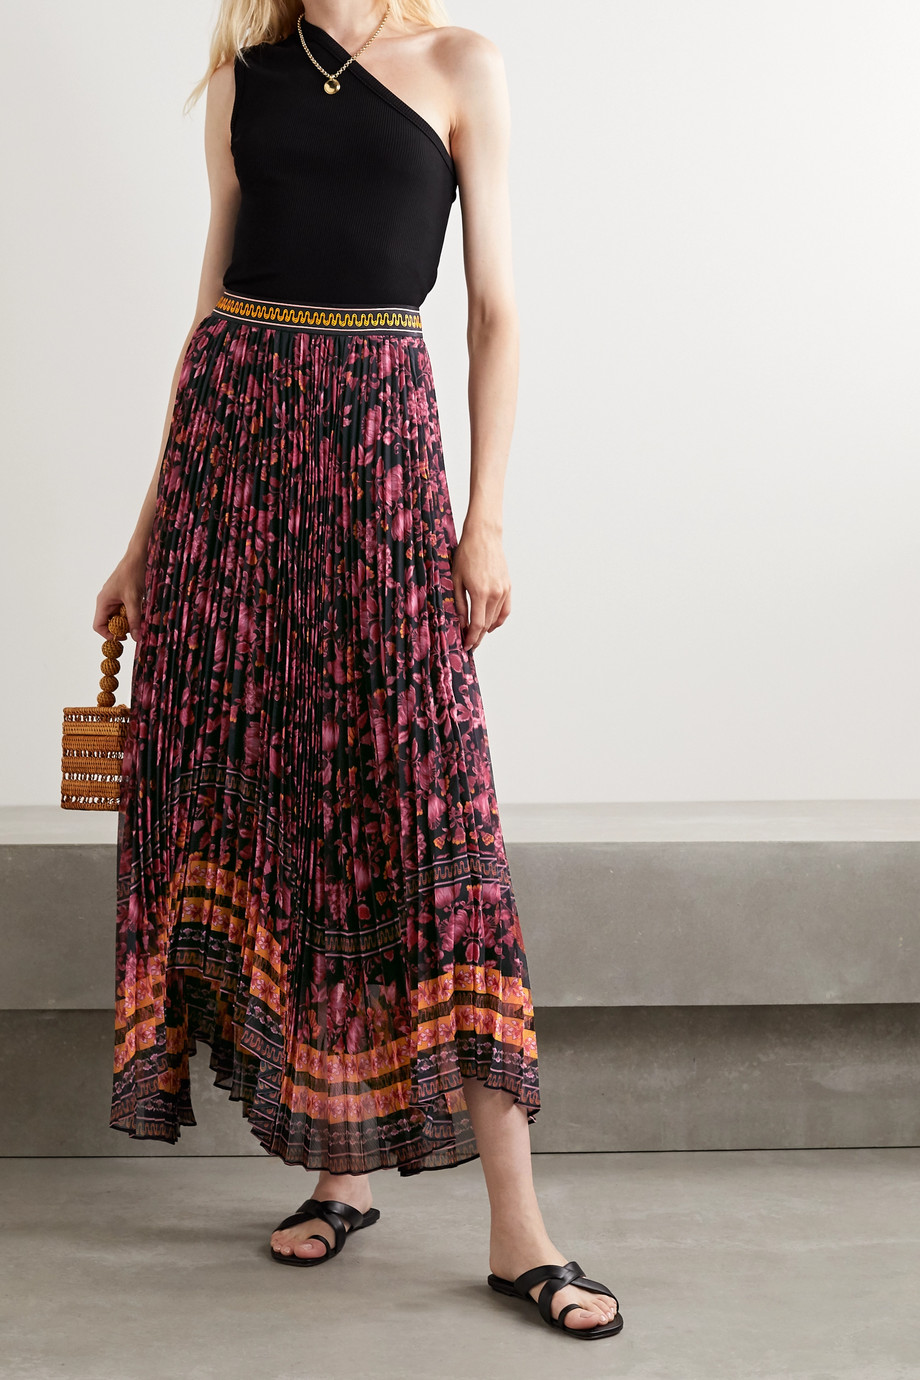 Alice + Olivia Katz asymmetric pleated floral-print crepe skirt